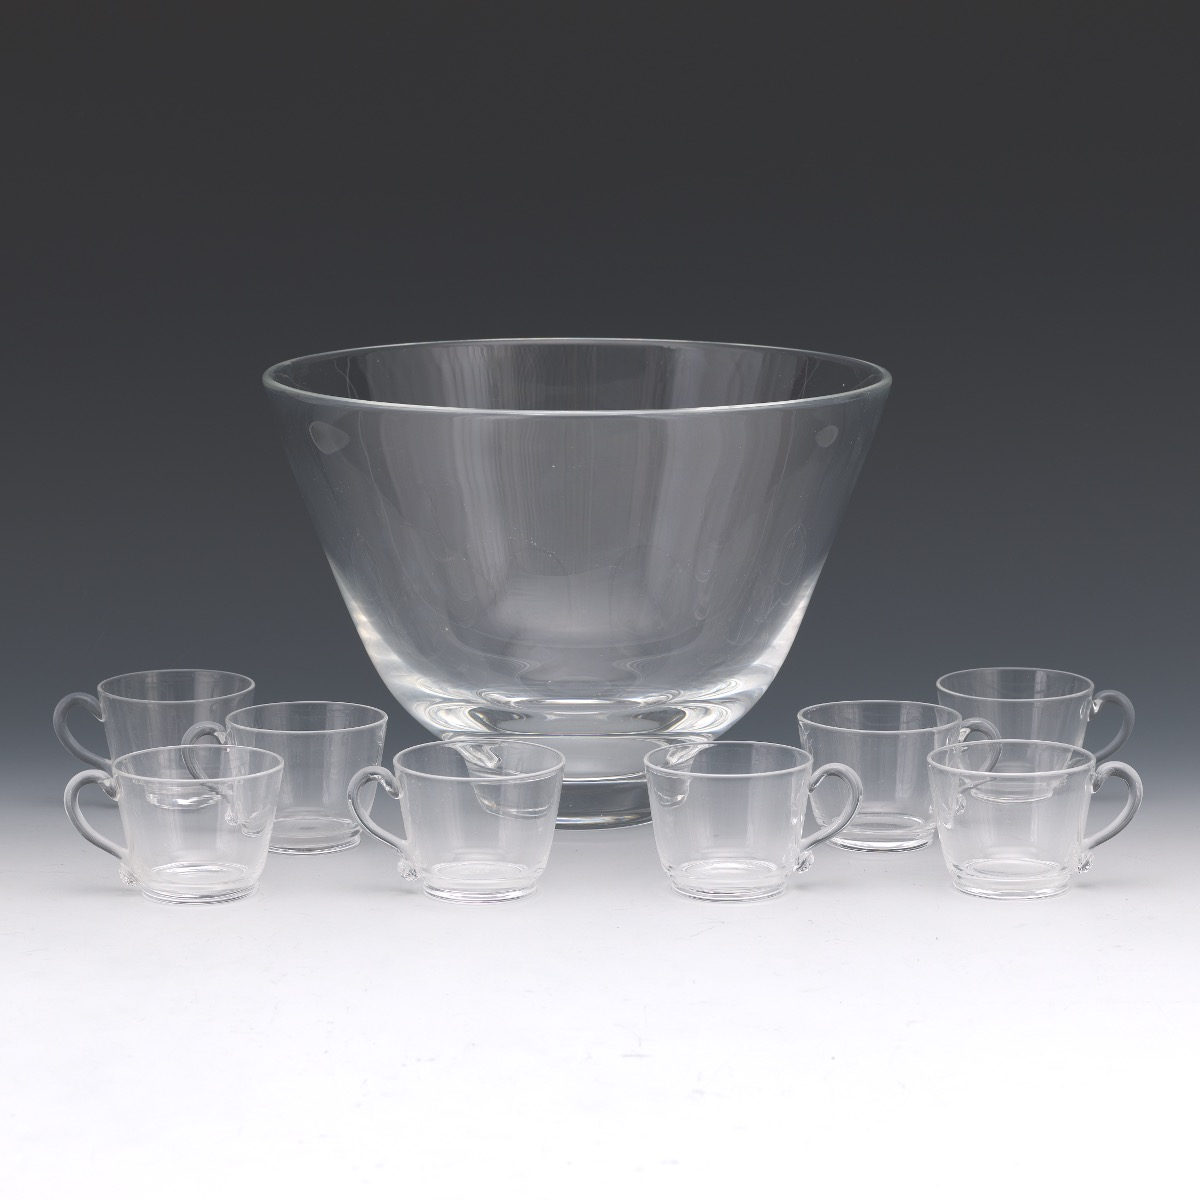 e141eb7c416 Steuben Crystal Punch Bowl and Cups